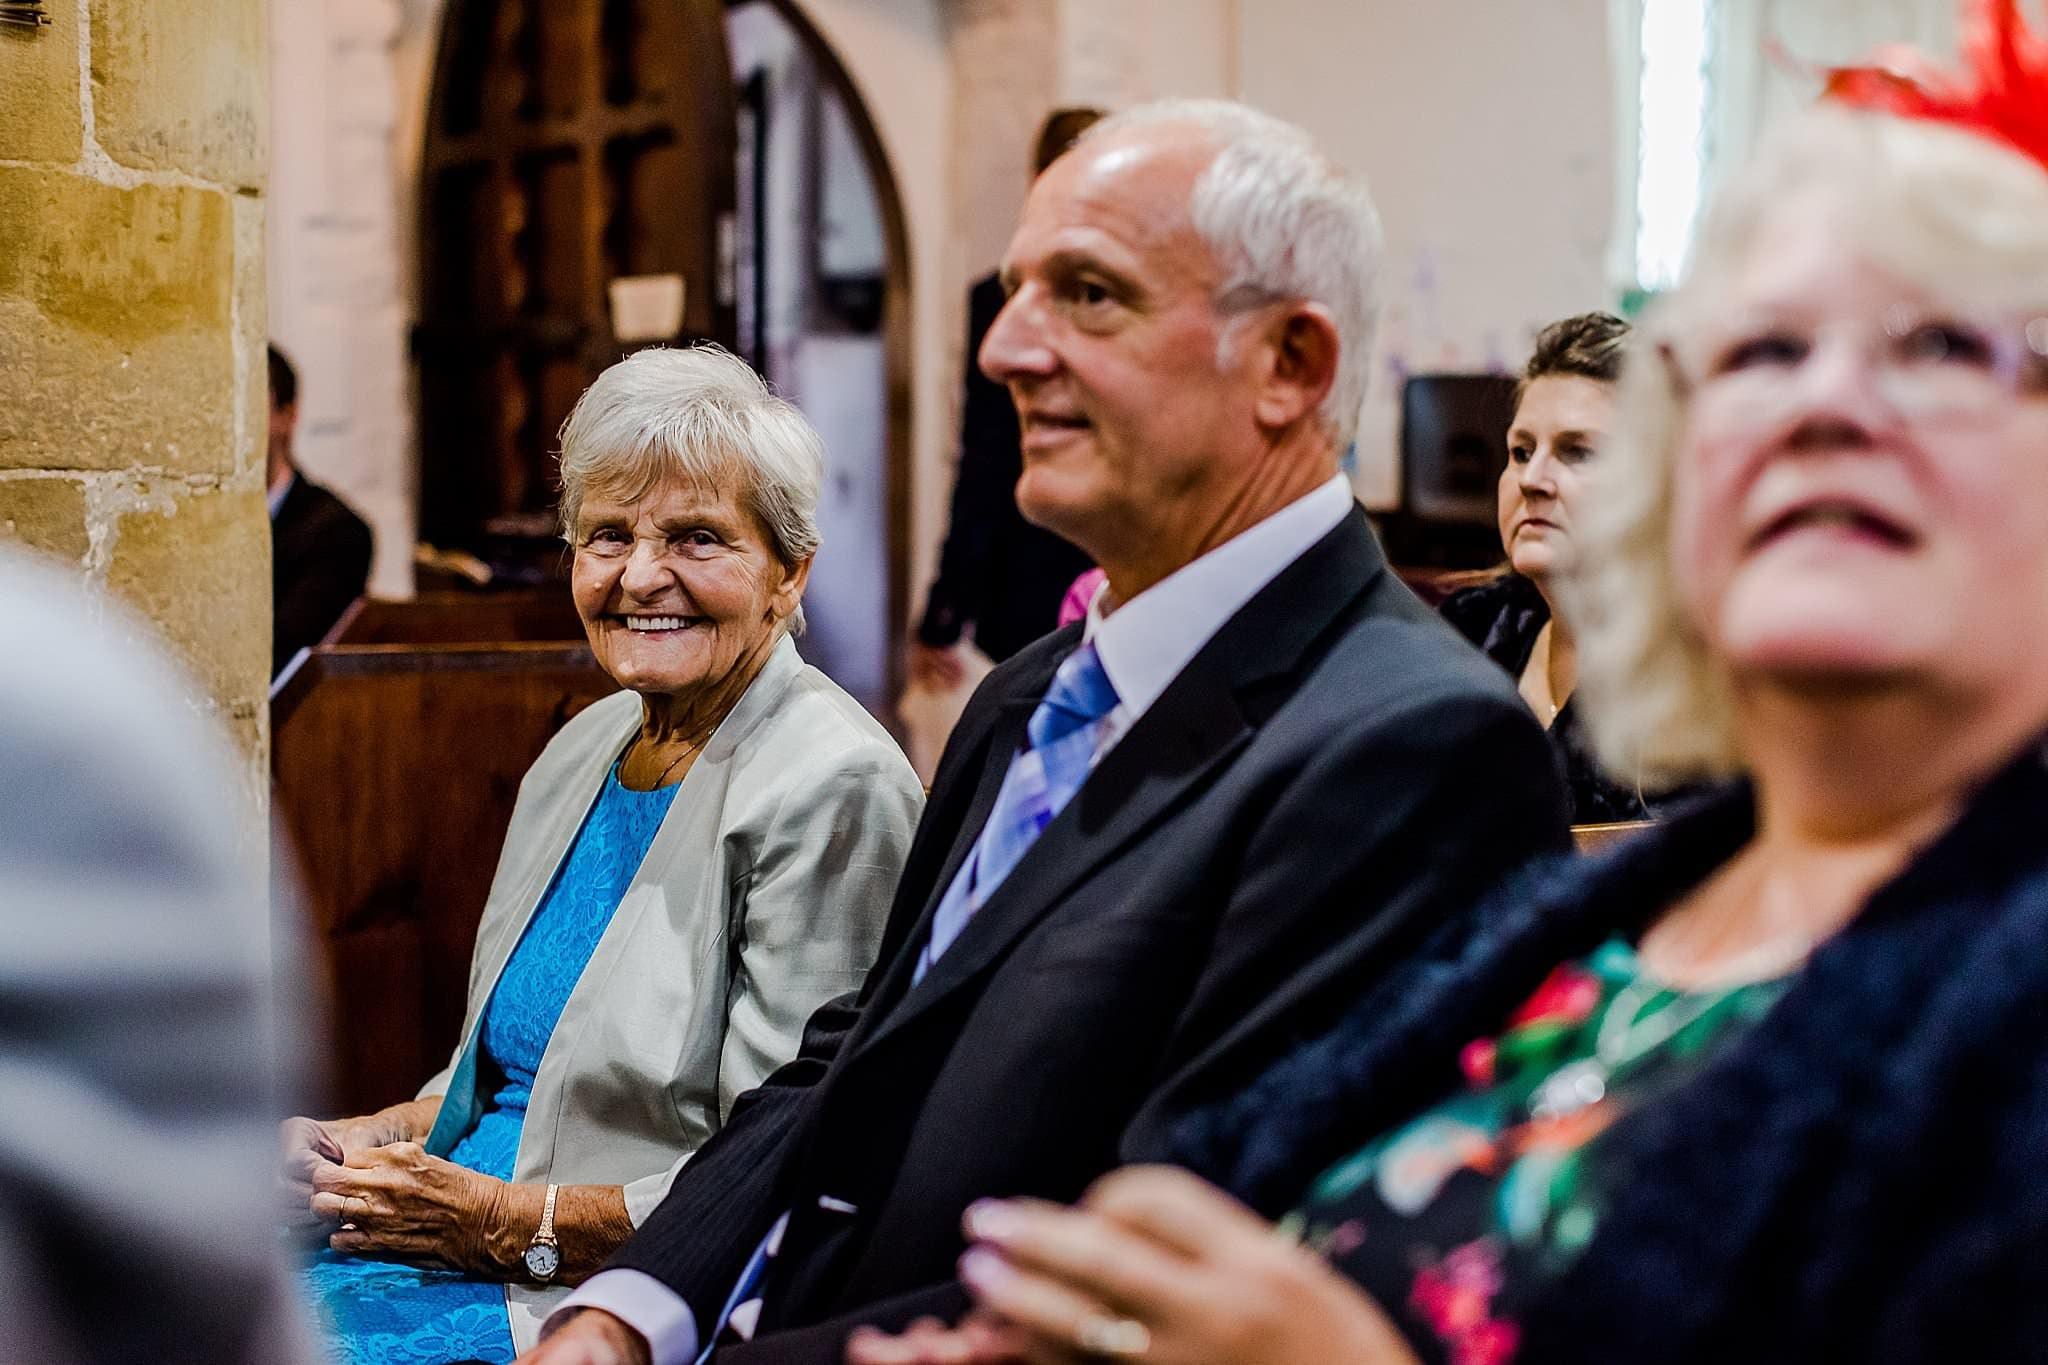 Grandmother smiles whilst waiting for the bride to arrive